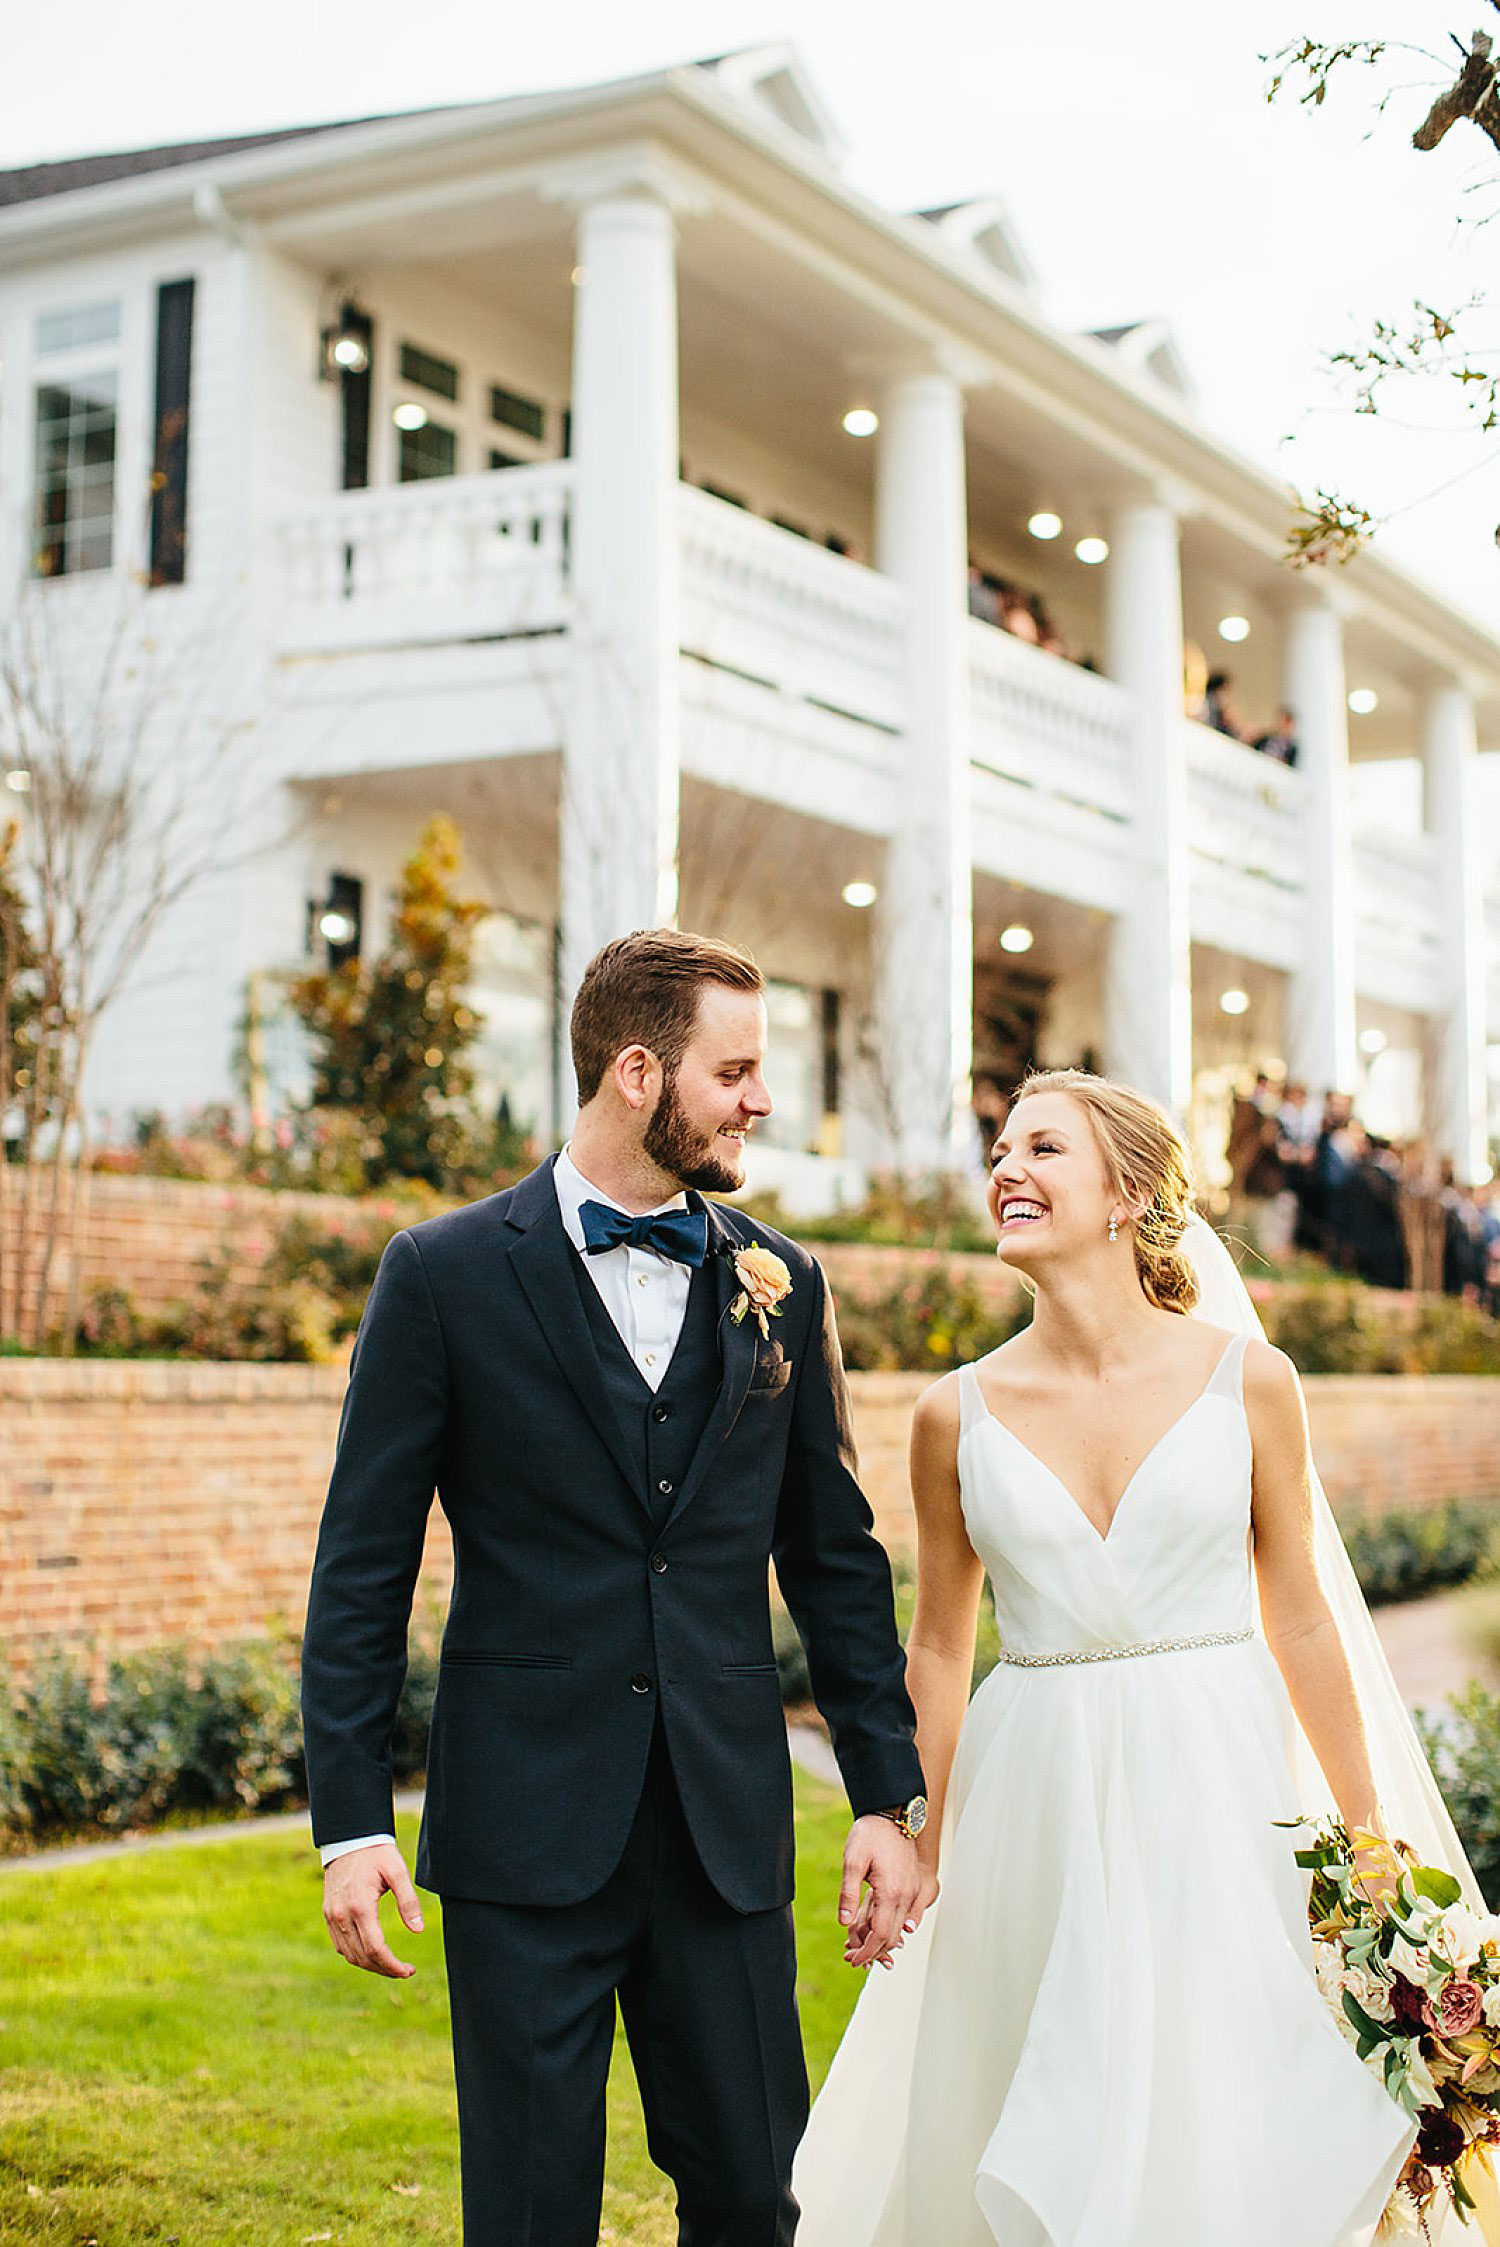 Southern bride and groom at a Texas wedding